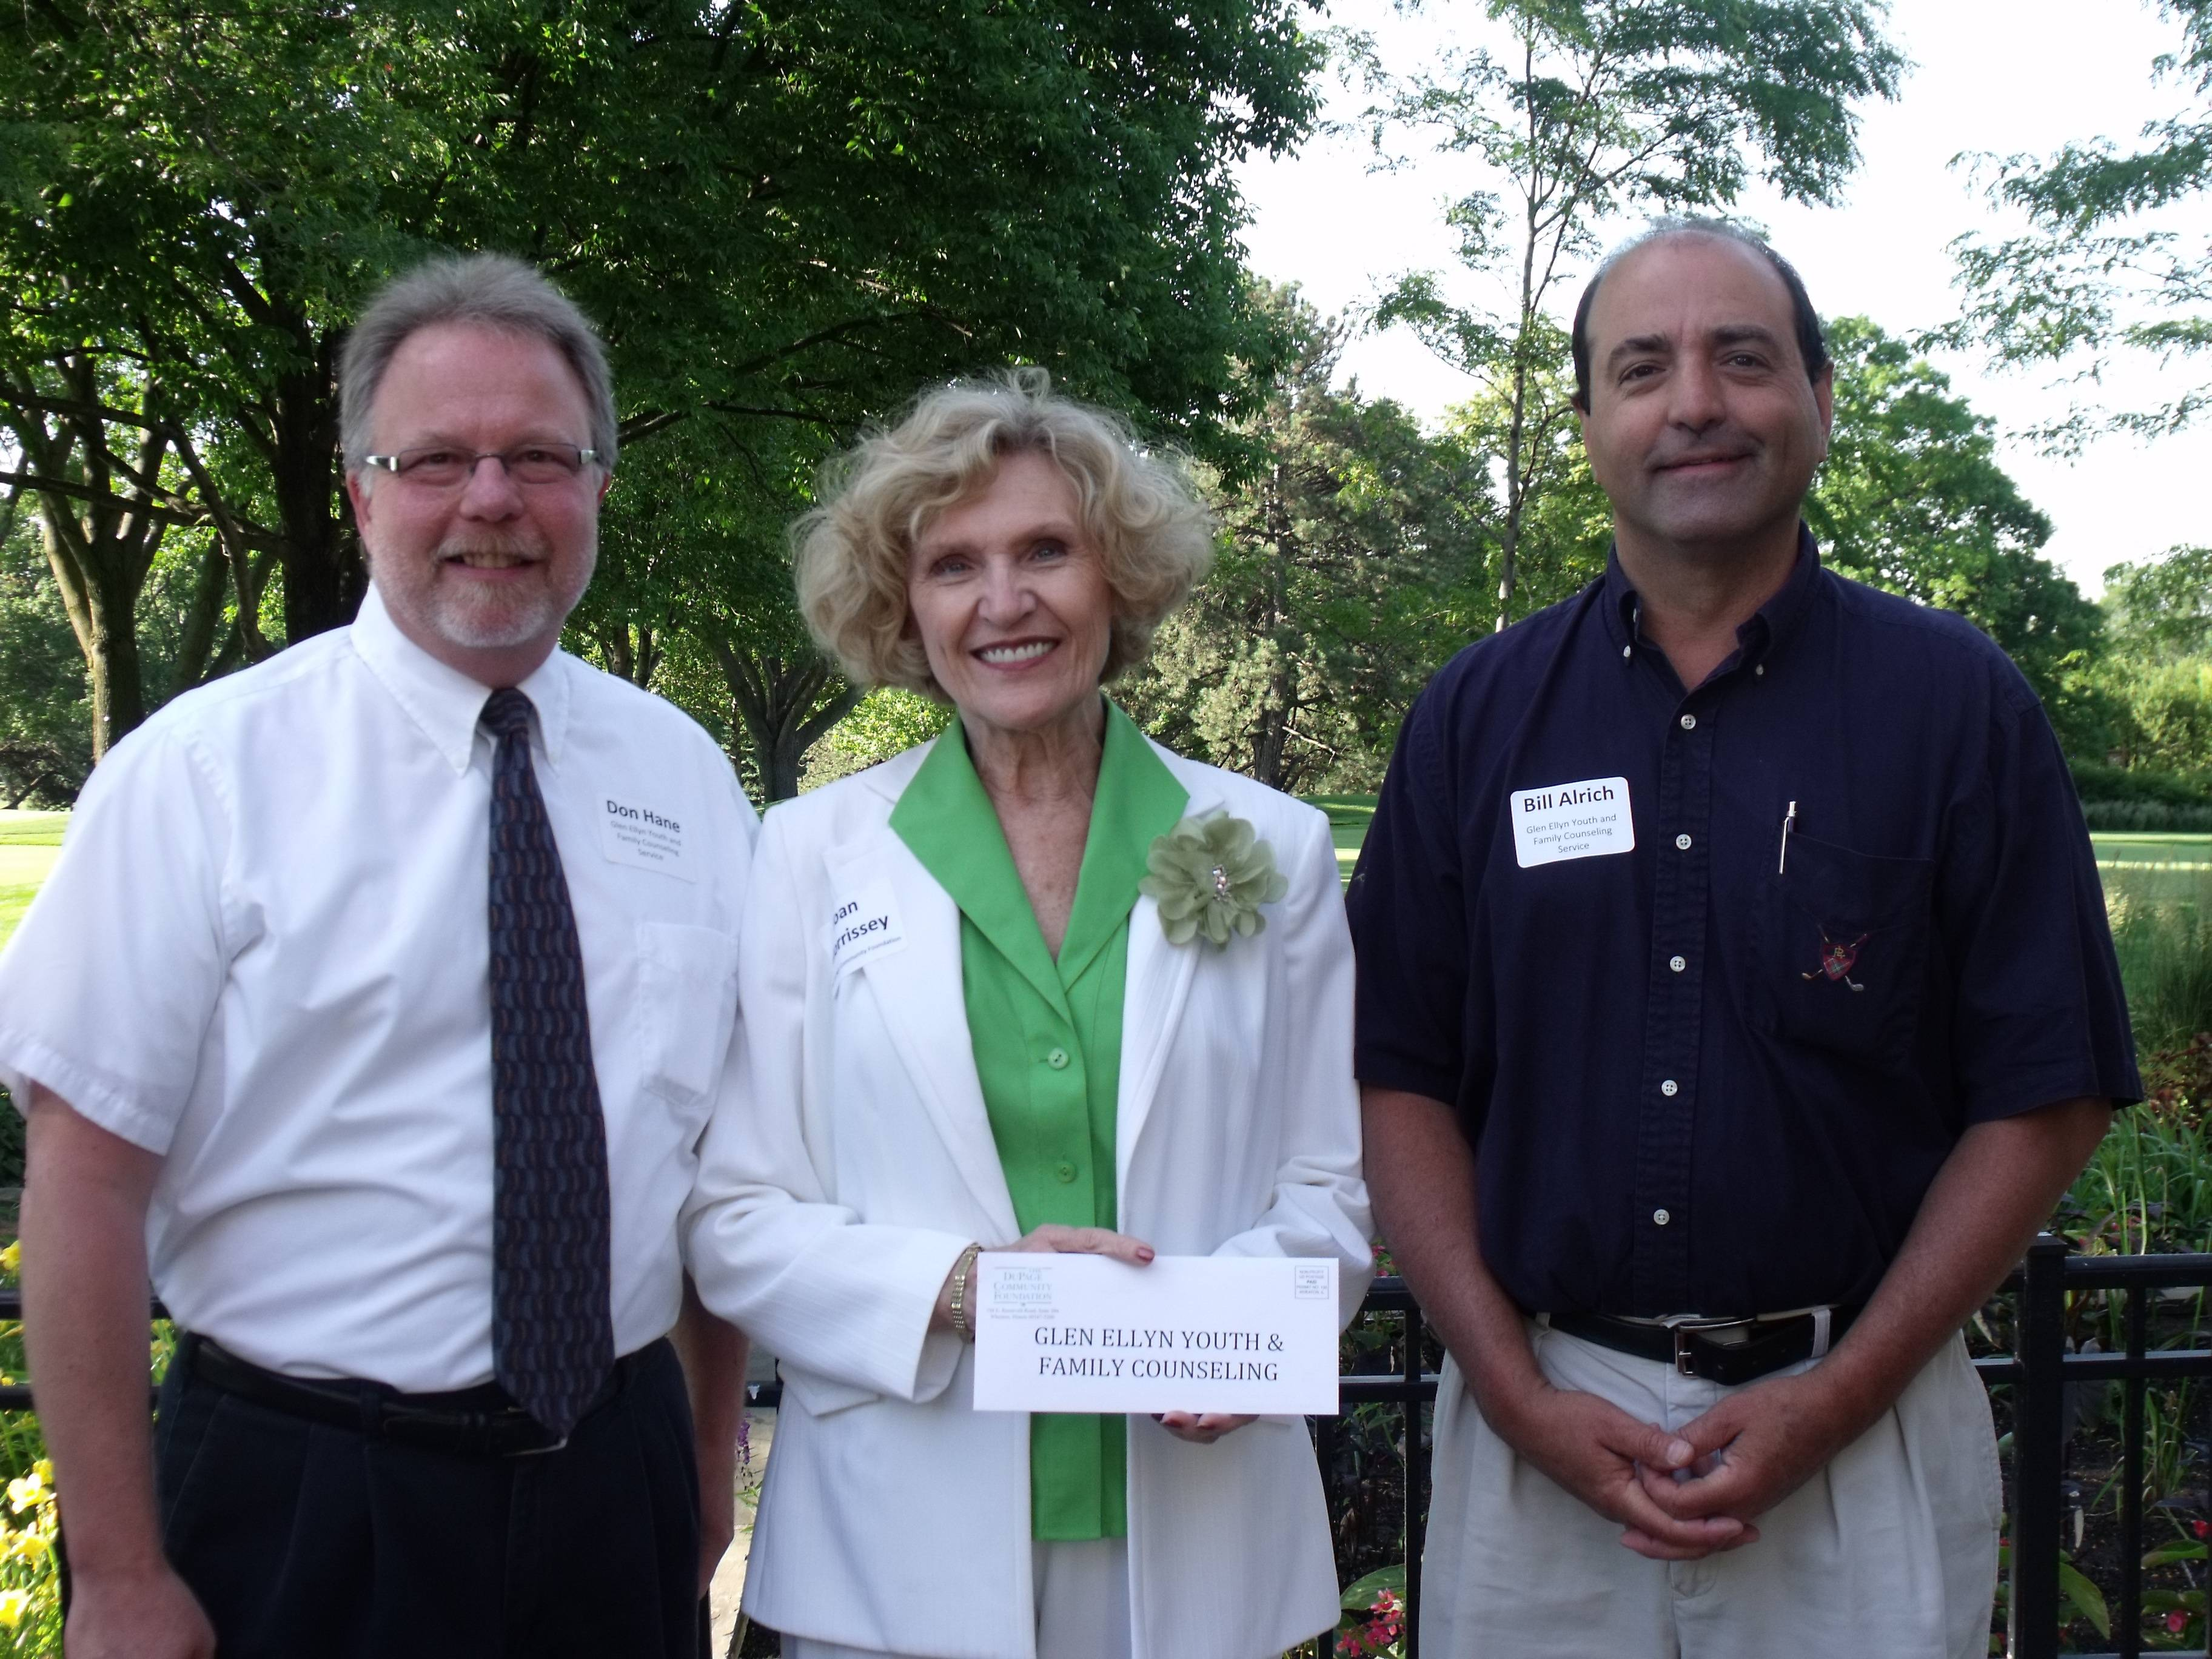 From left to right, Don Hane, Executive Director, GEYFCS, Joan Morrissey, Foundation Trustee and Grant Committee Chair and Bill Alrich, GEYFCS Board Vice President